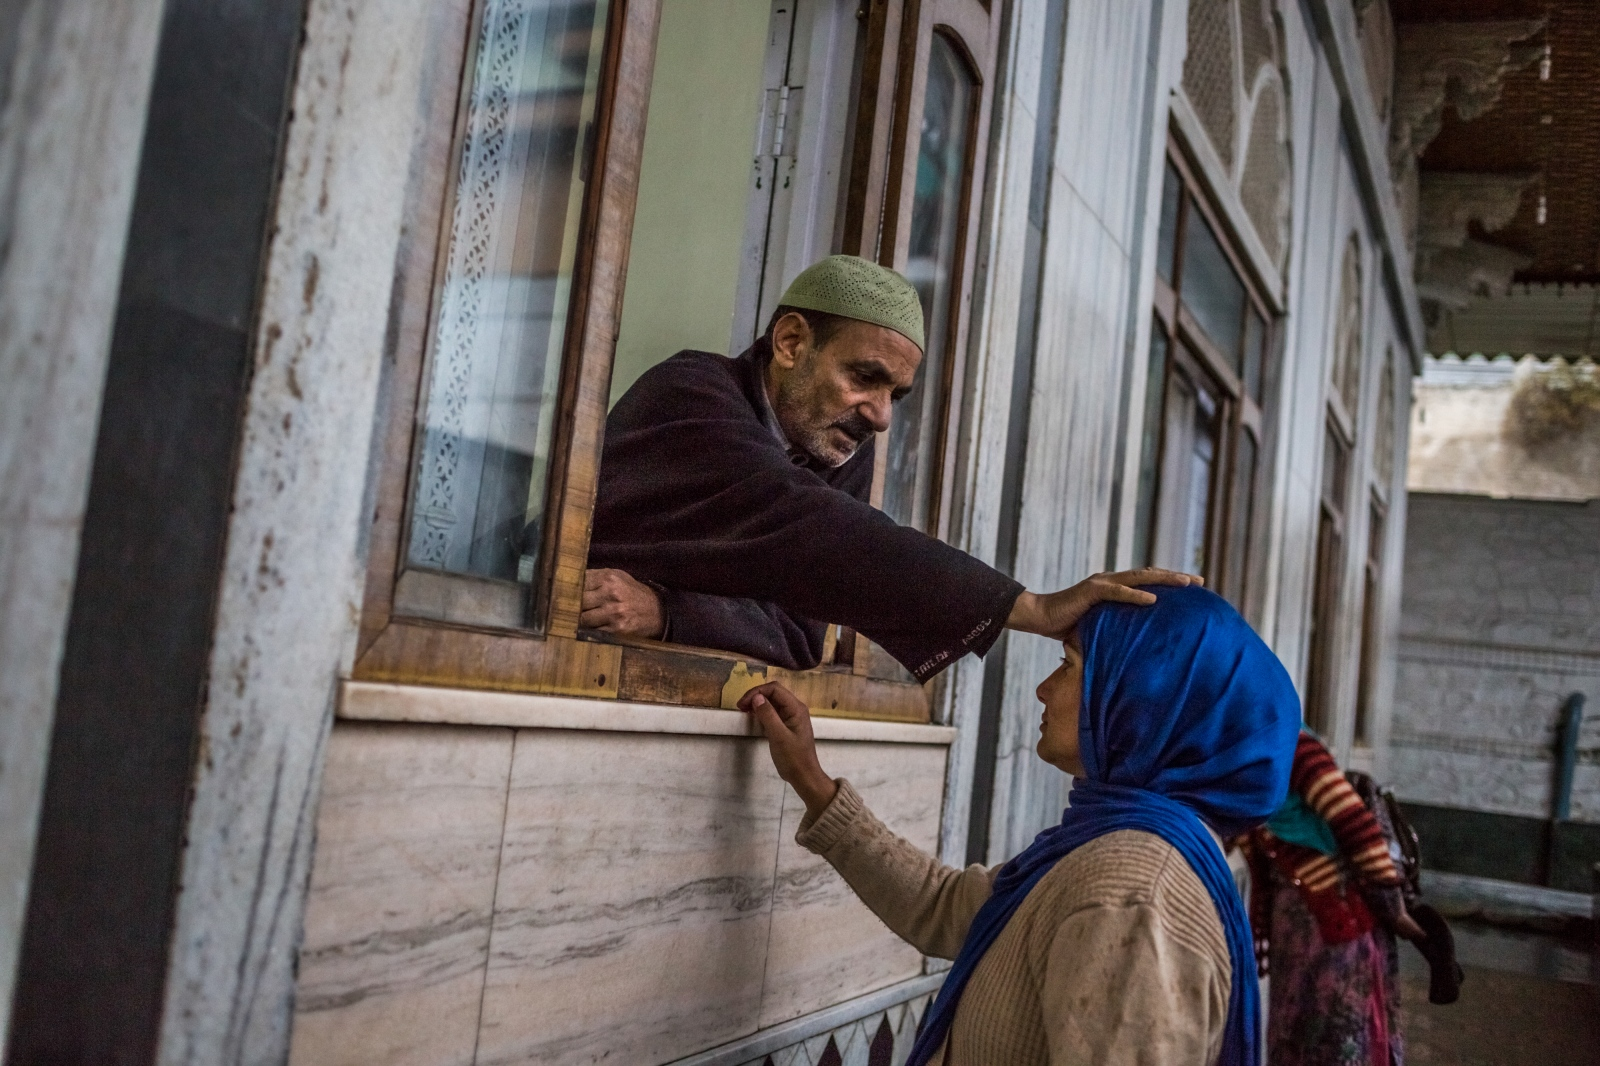 A Kashmiri 'pir', or faith healer offers prayers as he blesses a woman inside the Makhdoom Sahib Shrine in Srinagar. Many Kashmiris seek solace in shrines dedicated to auspicious saints or put their trust in faith healers, who bless potions and offer recitations or amulets thought to bring powers of protection.